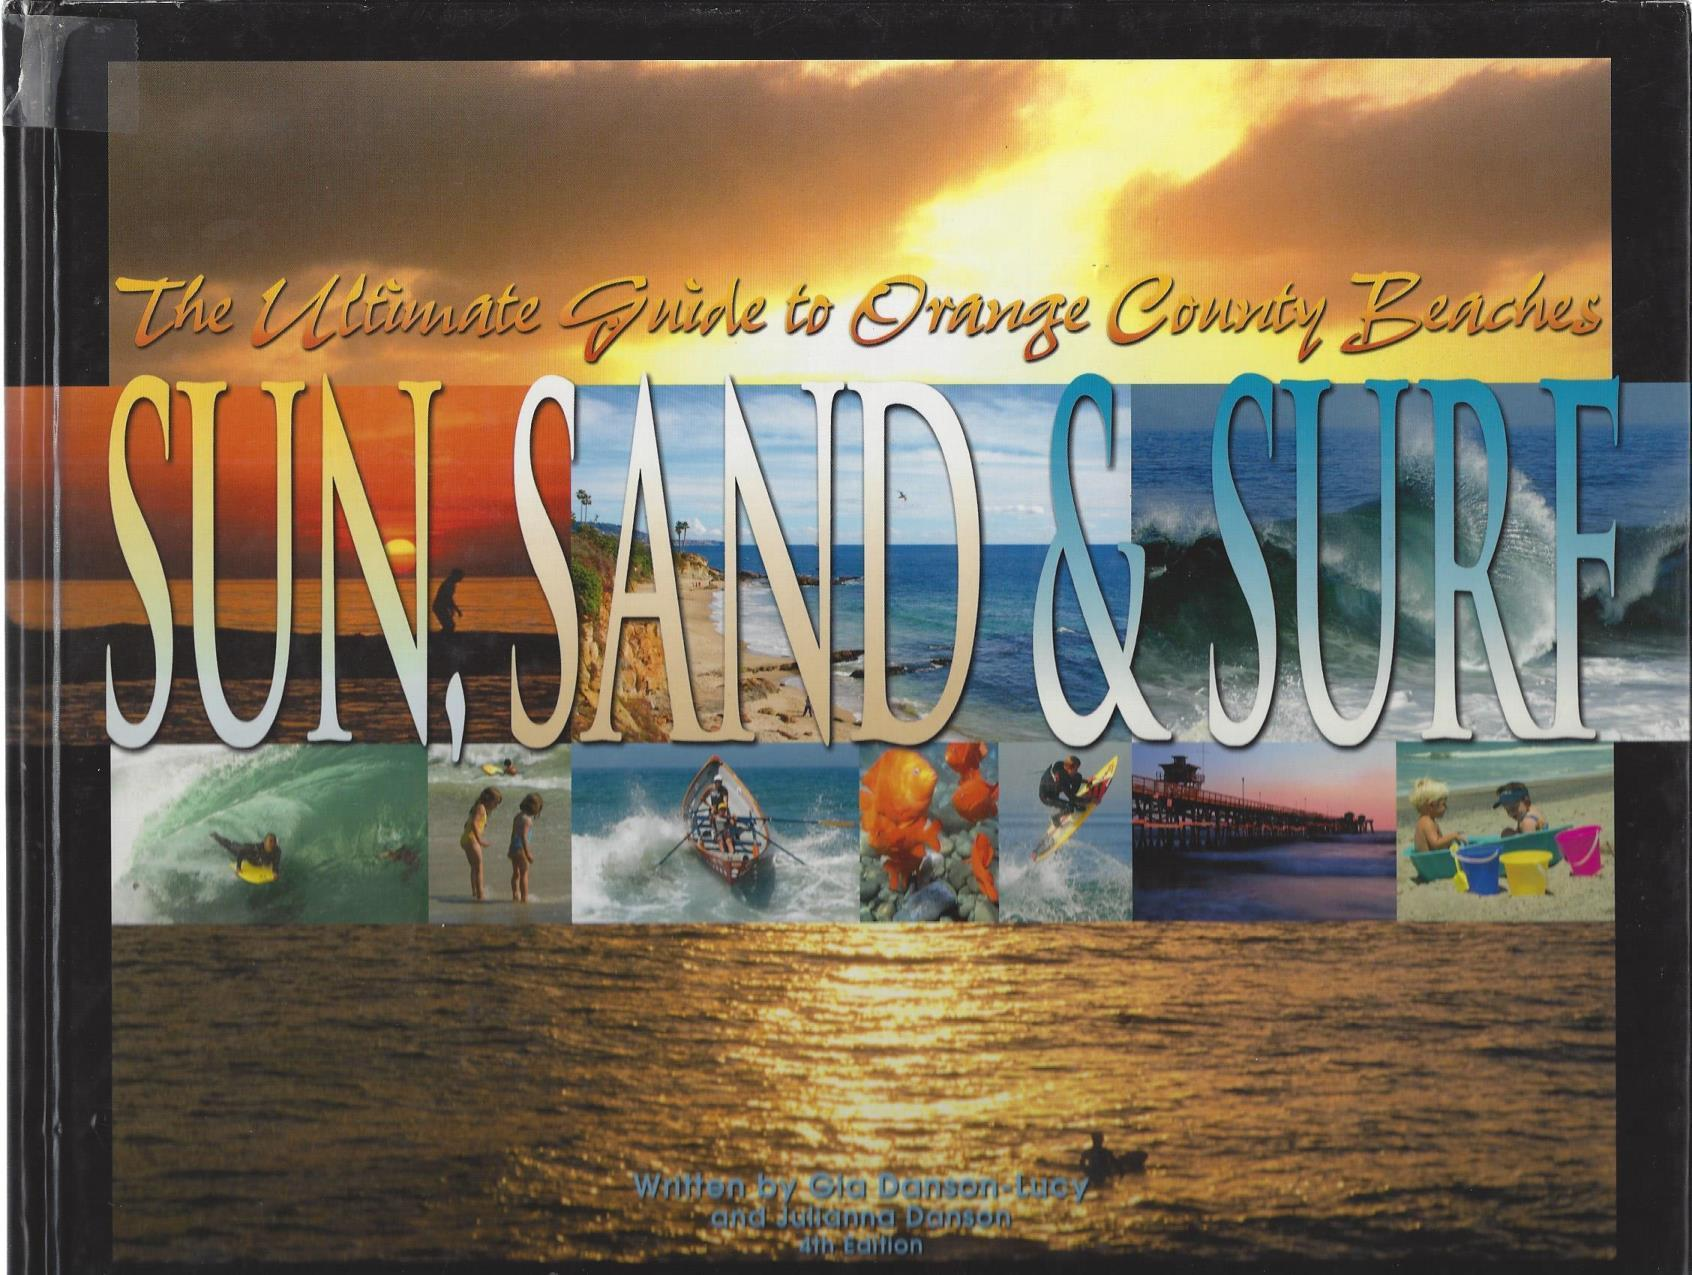 Sun, Sand & Surf: The Ultimate Guide To Orange County Beaches, Gia Lucy; Gia Lucy [Illustrator]; Richard Collins [Editor]; Mark Brautigam [Illustrator]; Peter Phan [Illustrator]; Matt Higby [Illustrator]; Suzy Fernandez [Illustrator]; Michael Slezak [Illustrator]; Dmitry Lyahkhov [Illustrator];